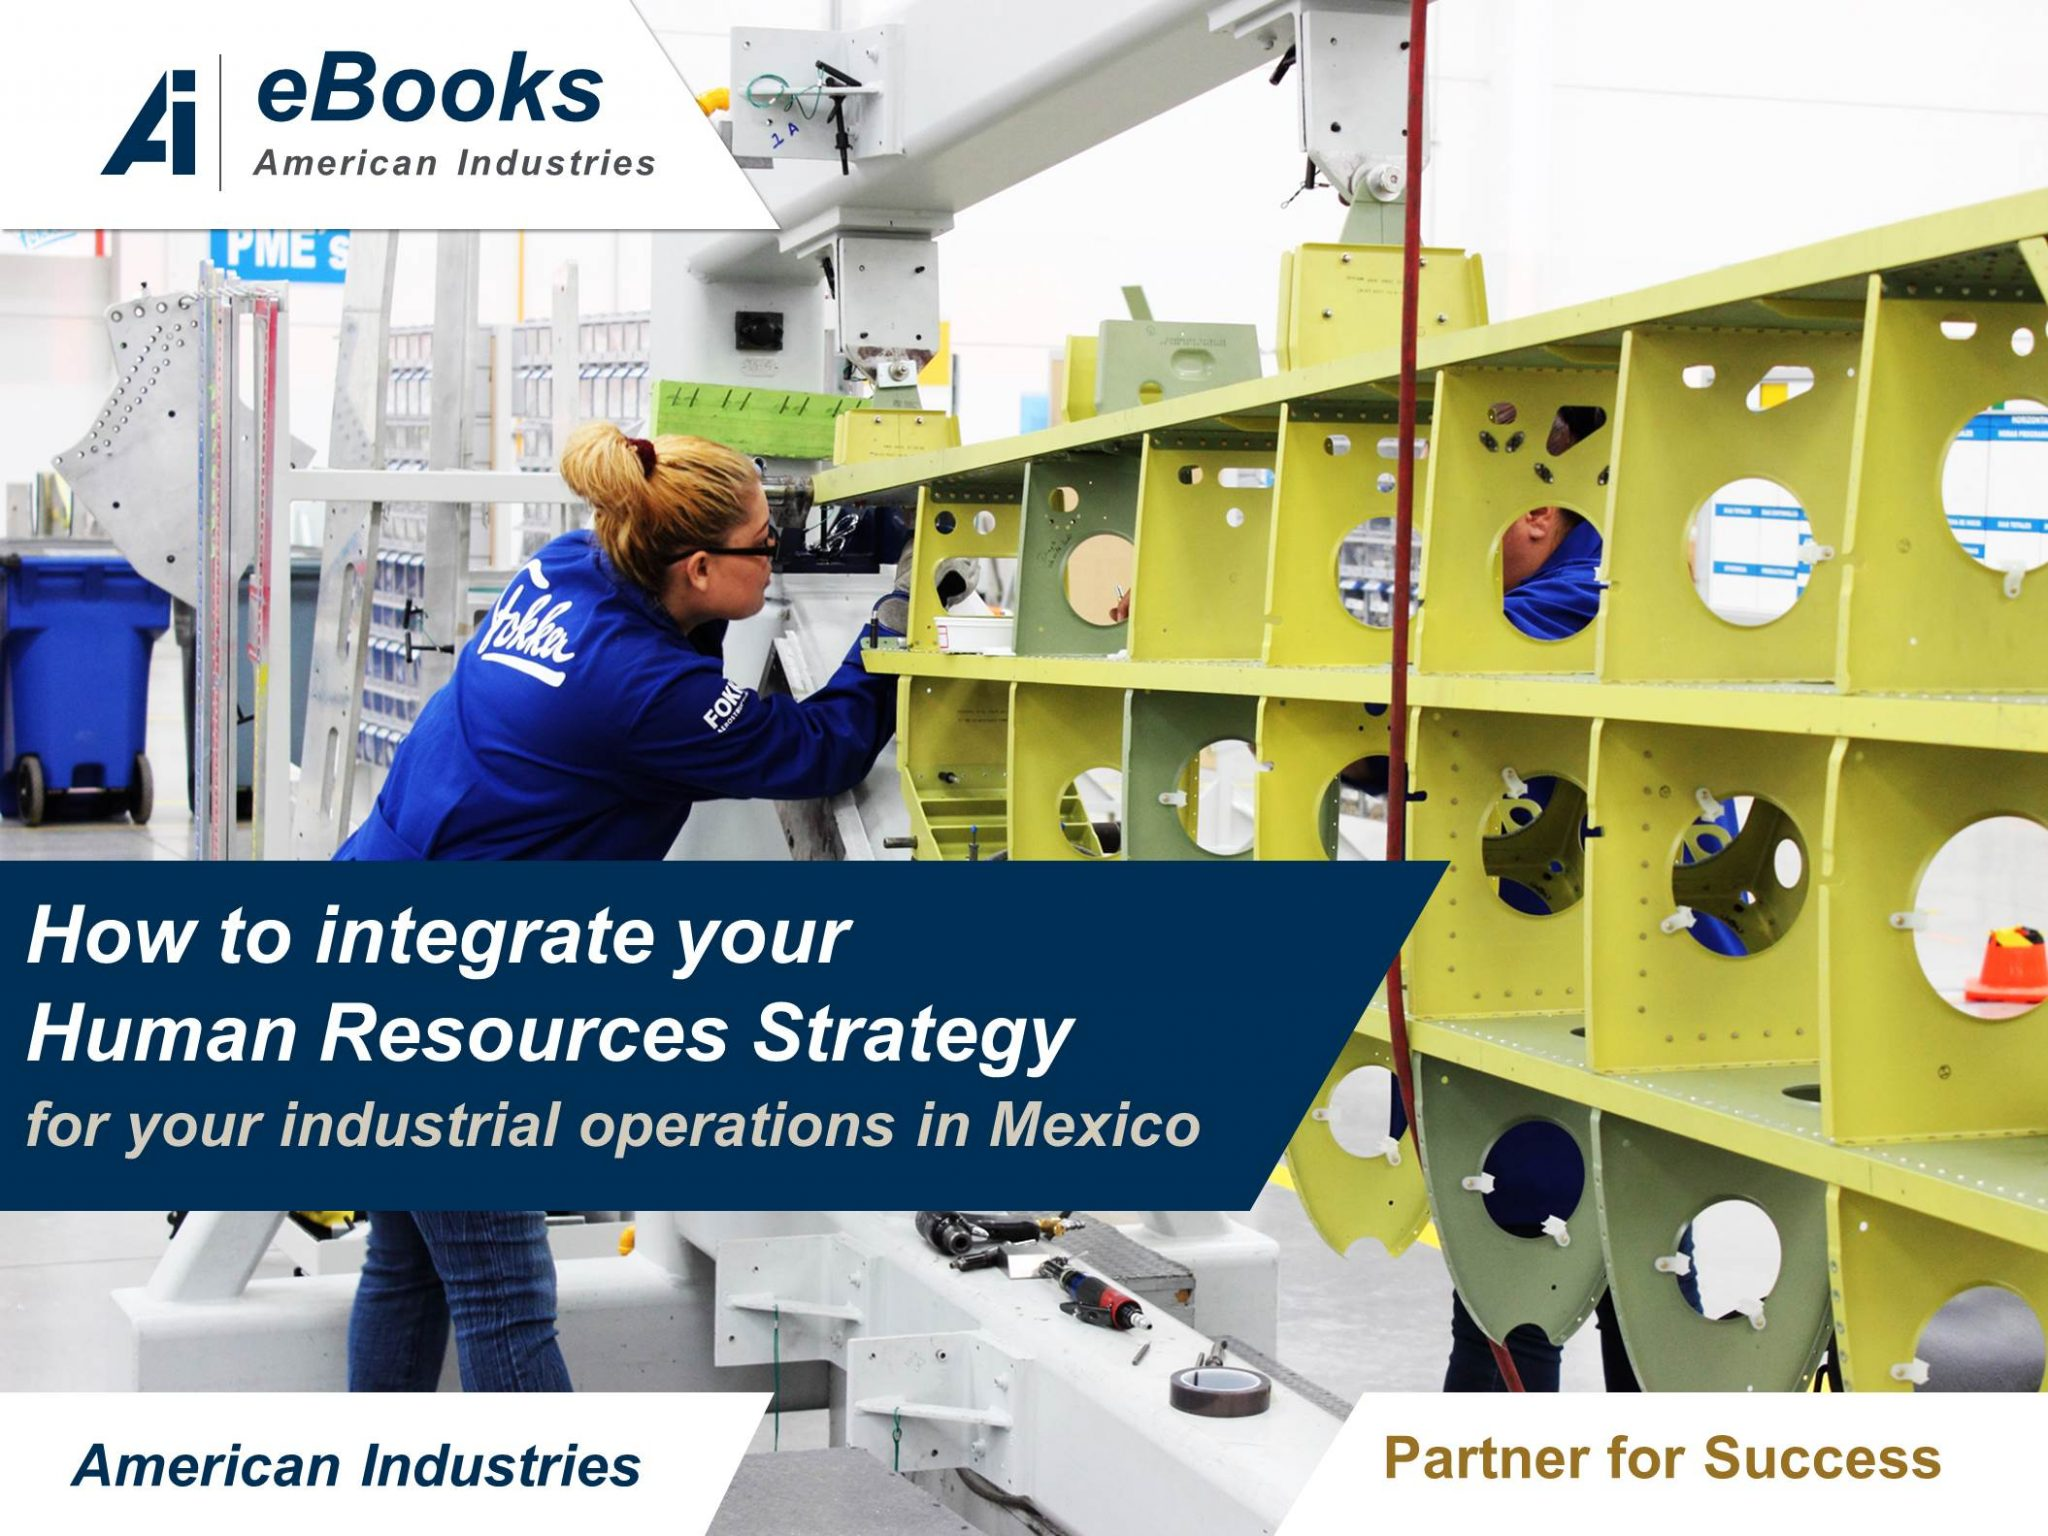 How To Integrate Your Human Resources Strategy For Your Industrial Operations In Mexico